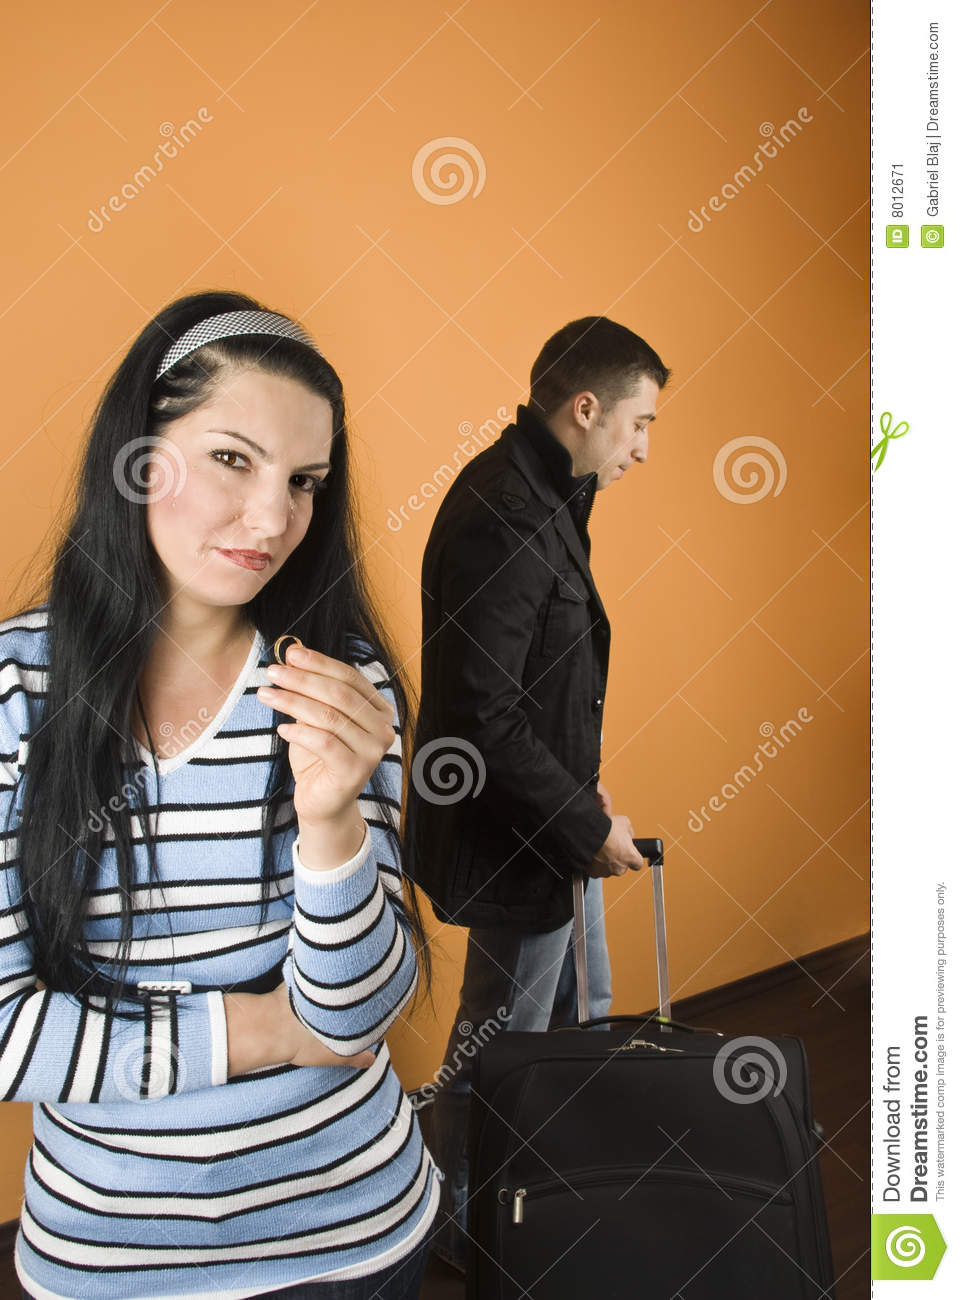 couple dispute separation woman leaving man hold royalty free stock photo. Black Bedroom Furniture Sets. Home Design Ideas